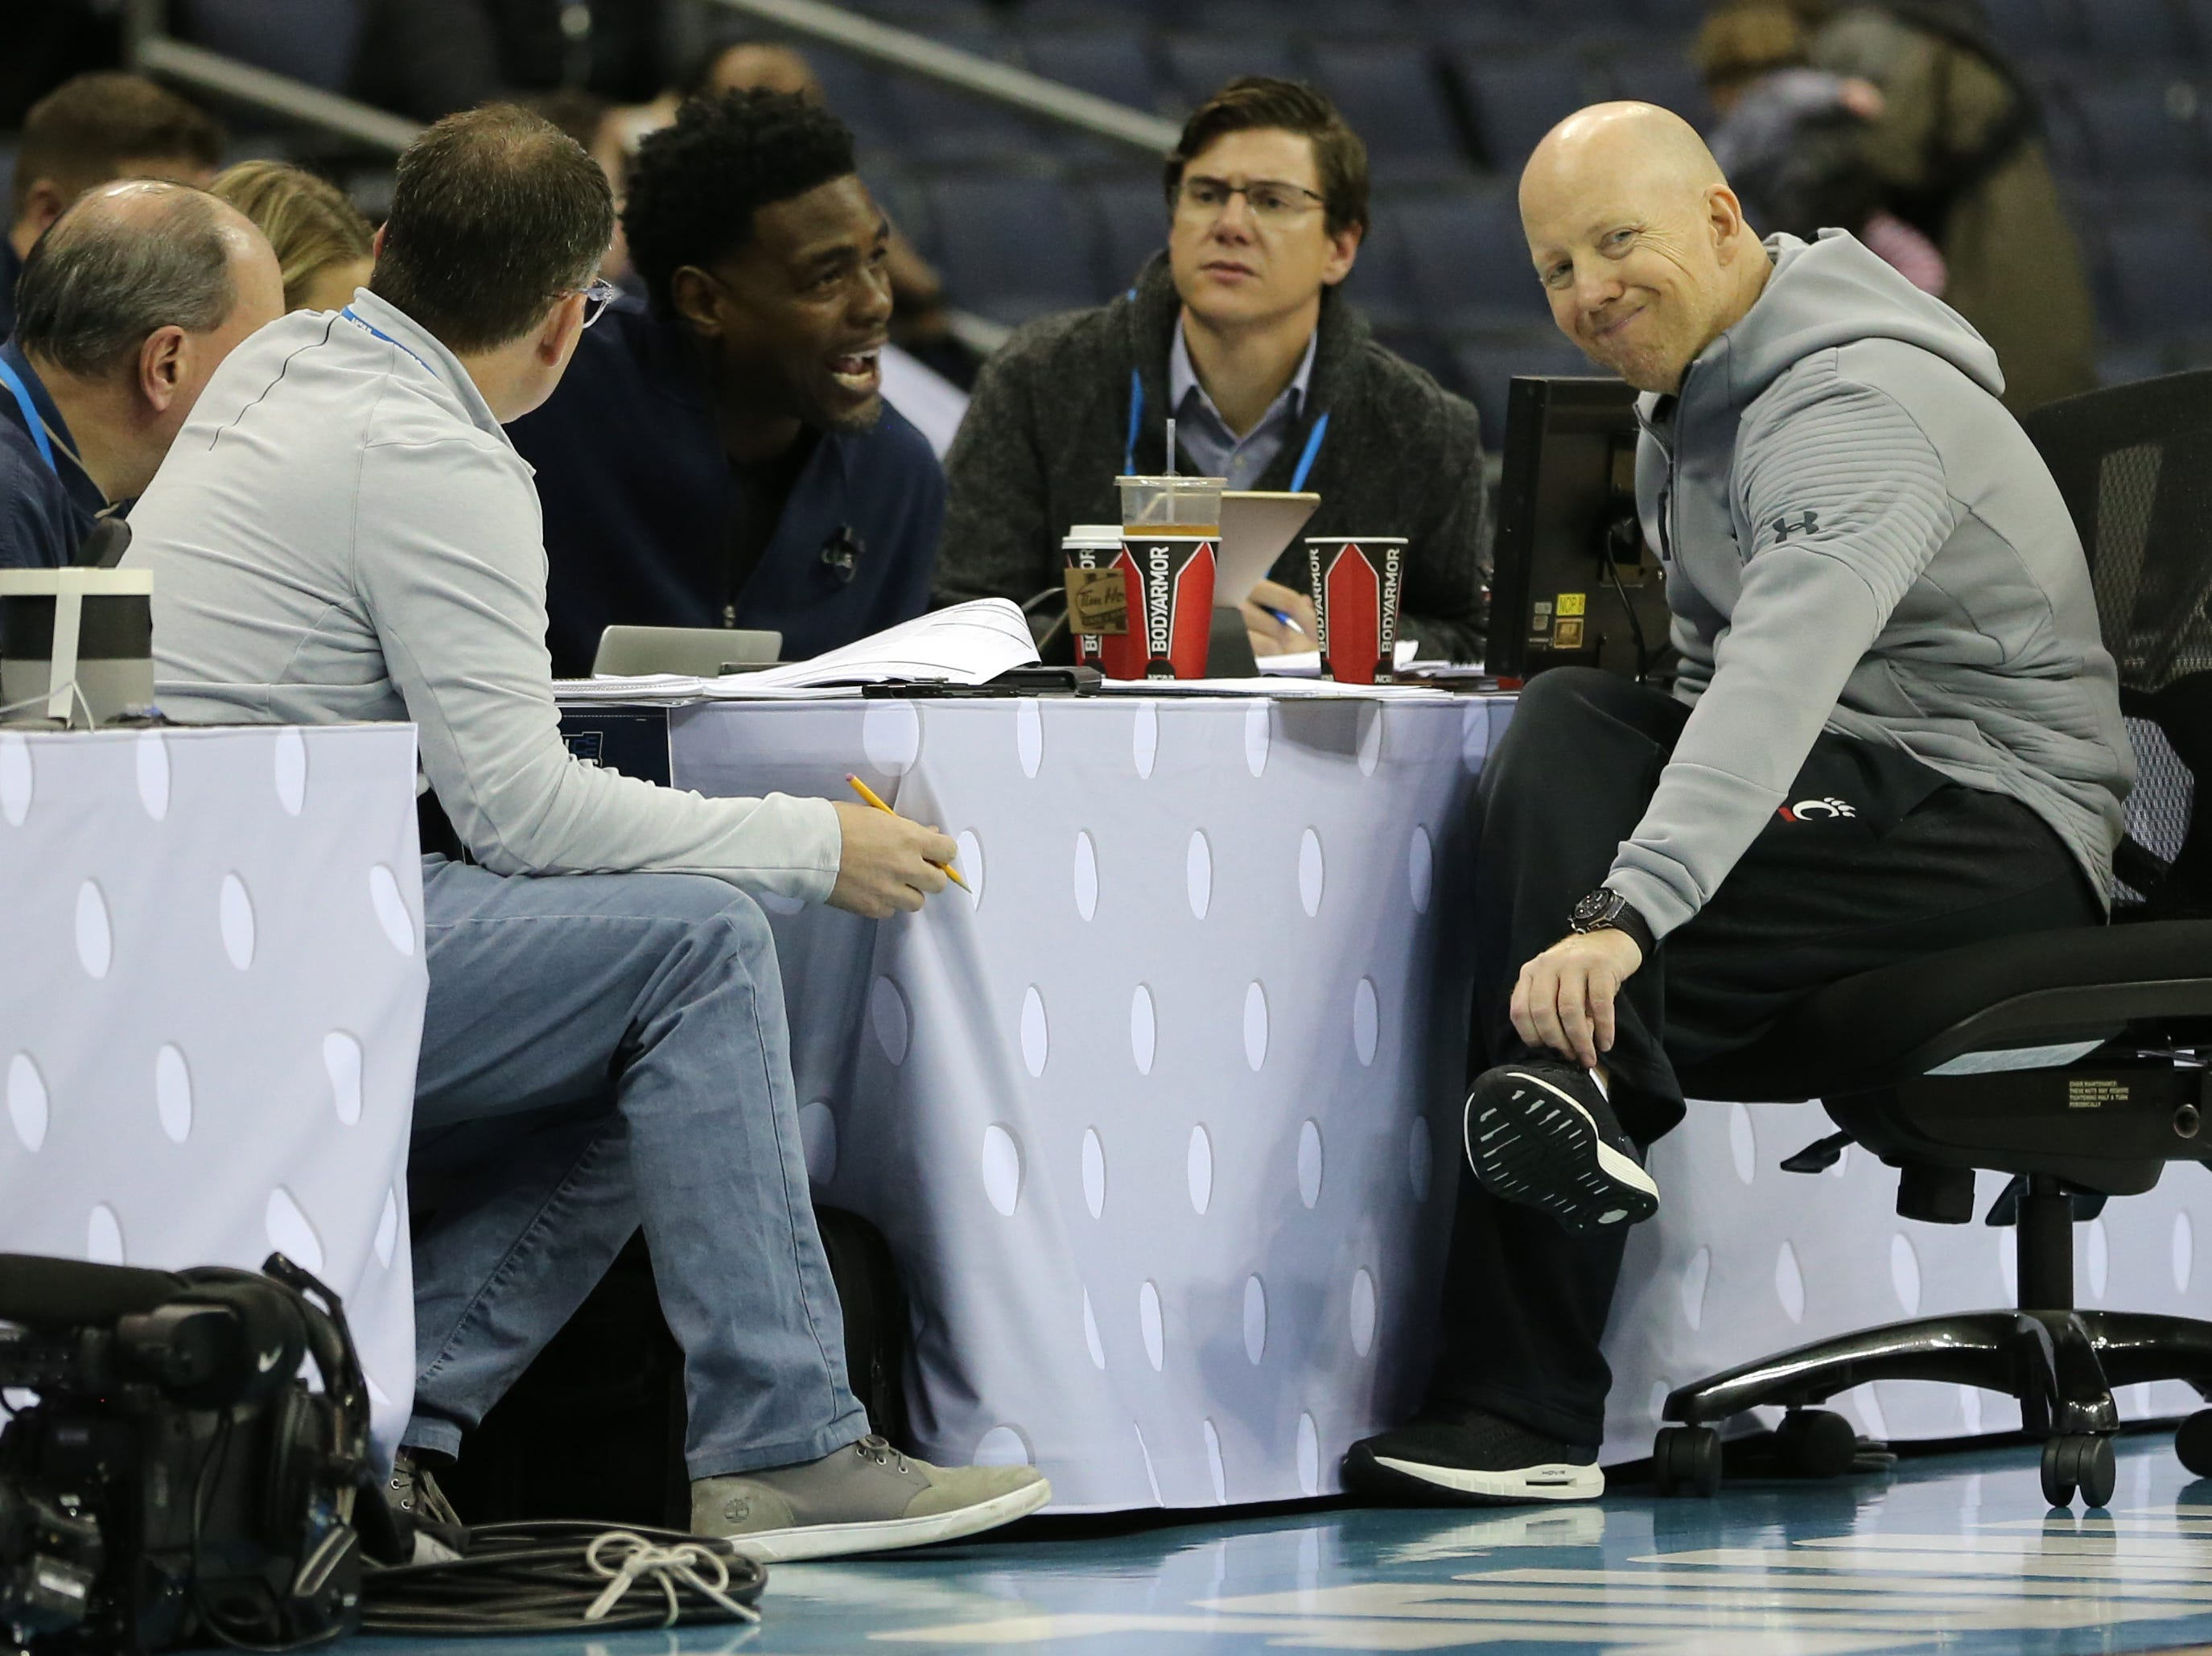 Cincinnati Bearcats head coach Mick Cronin speaks with the broadcast team, including Chris Webber, center, during open practice, Thursday, March 21, 2019, at Nationwide Arena in Columbus, Ohio.